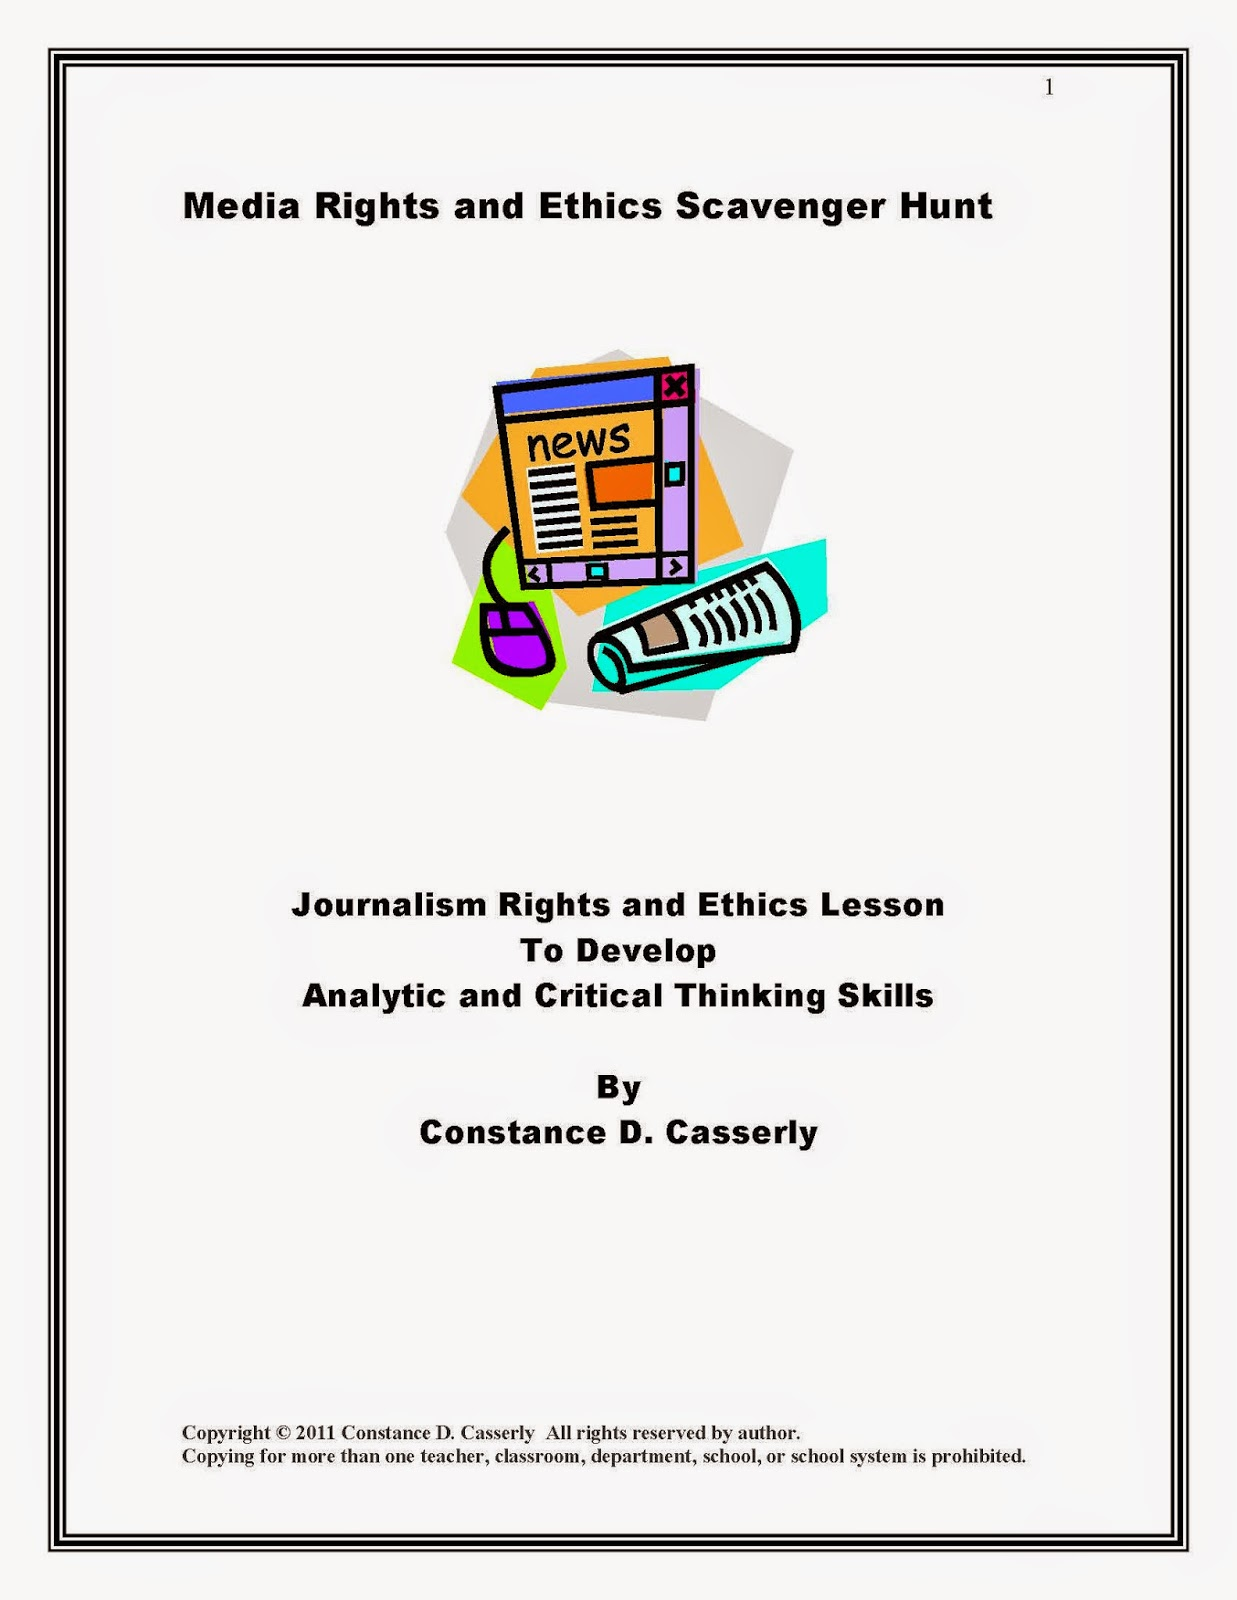 Journalism Rights and Ethics Scavenger Hunt